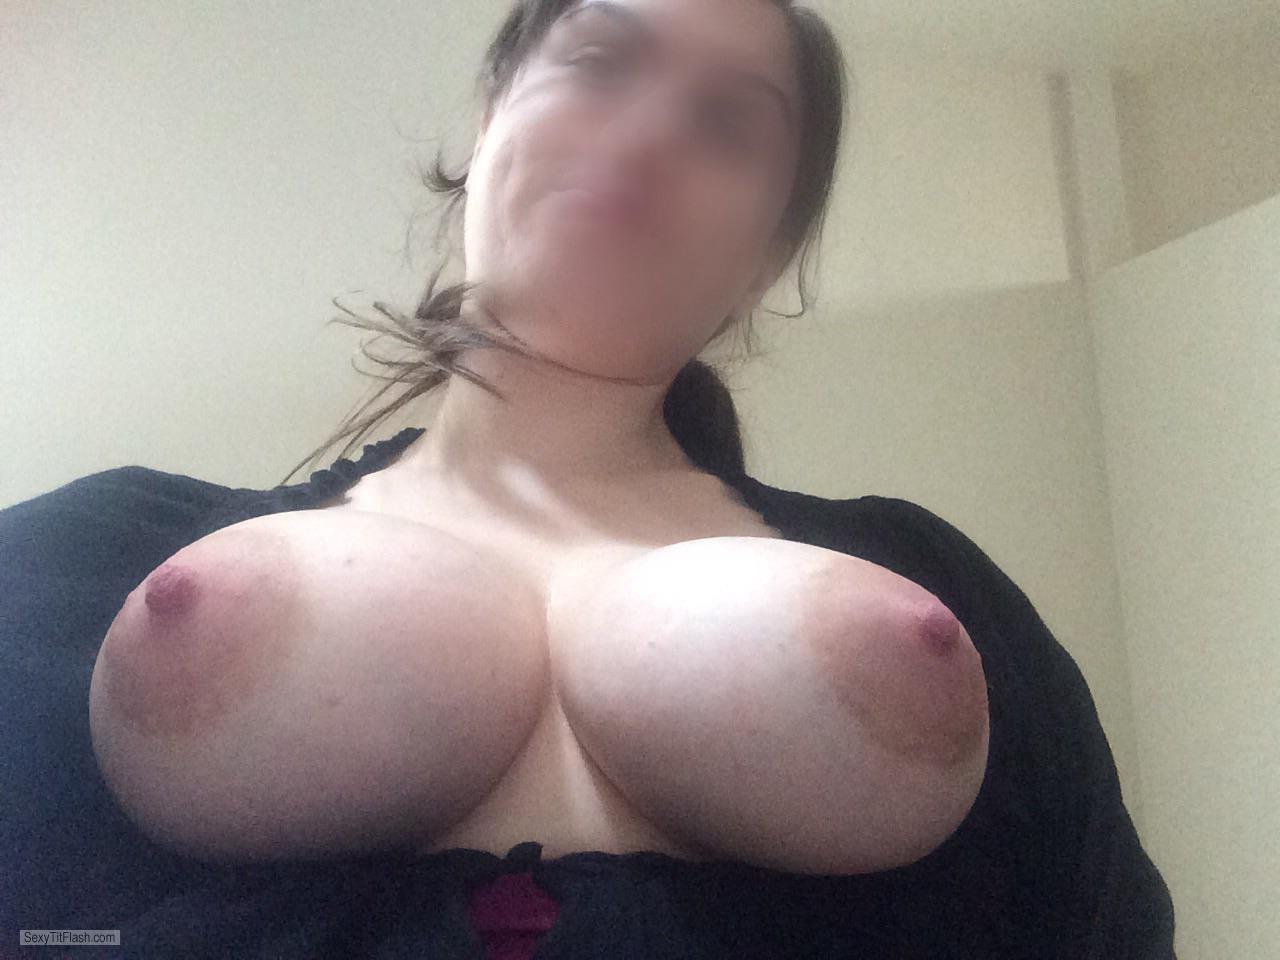 My Big Tits Selfie by Hot_salamander86